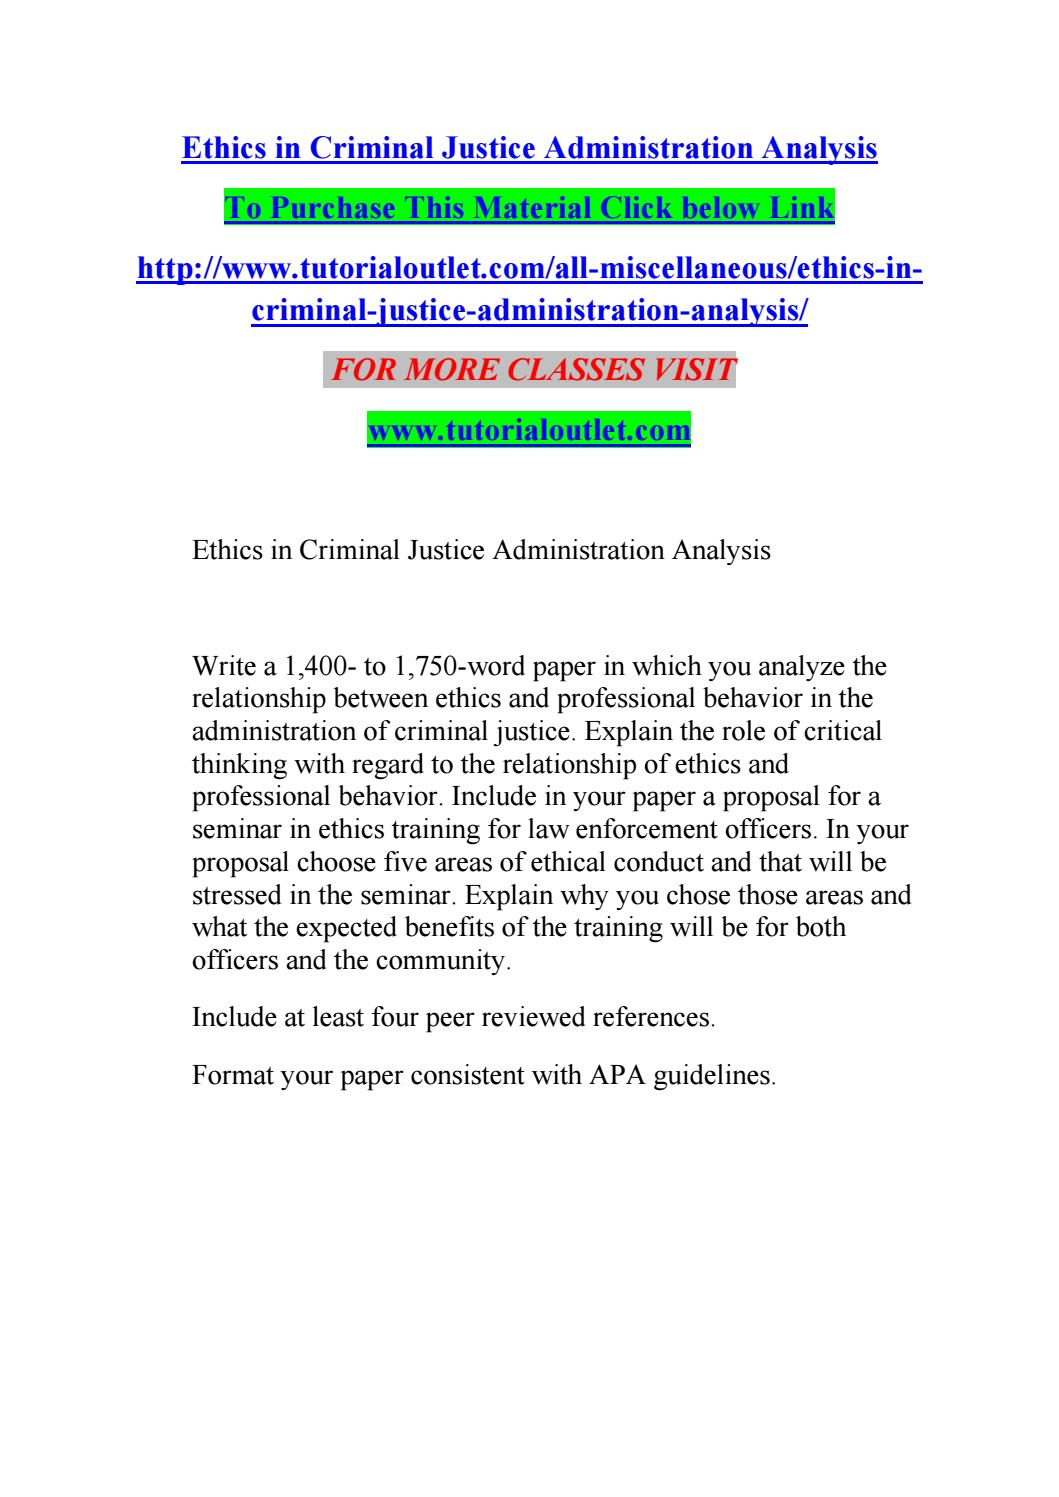 ethics in criminal justice essays Tip ethics are the principles that drive the criminal justice system these principles include impartiality, integrity, respect for privacy and respect for all parties' civil rights.